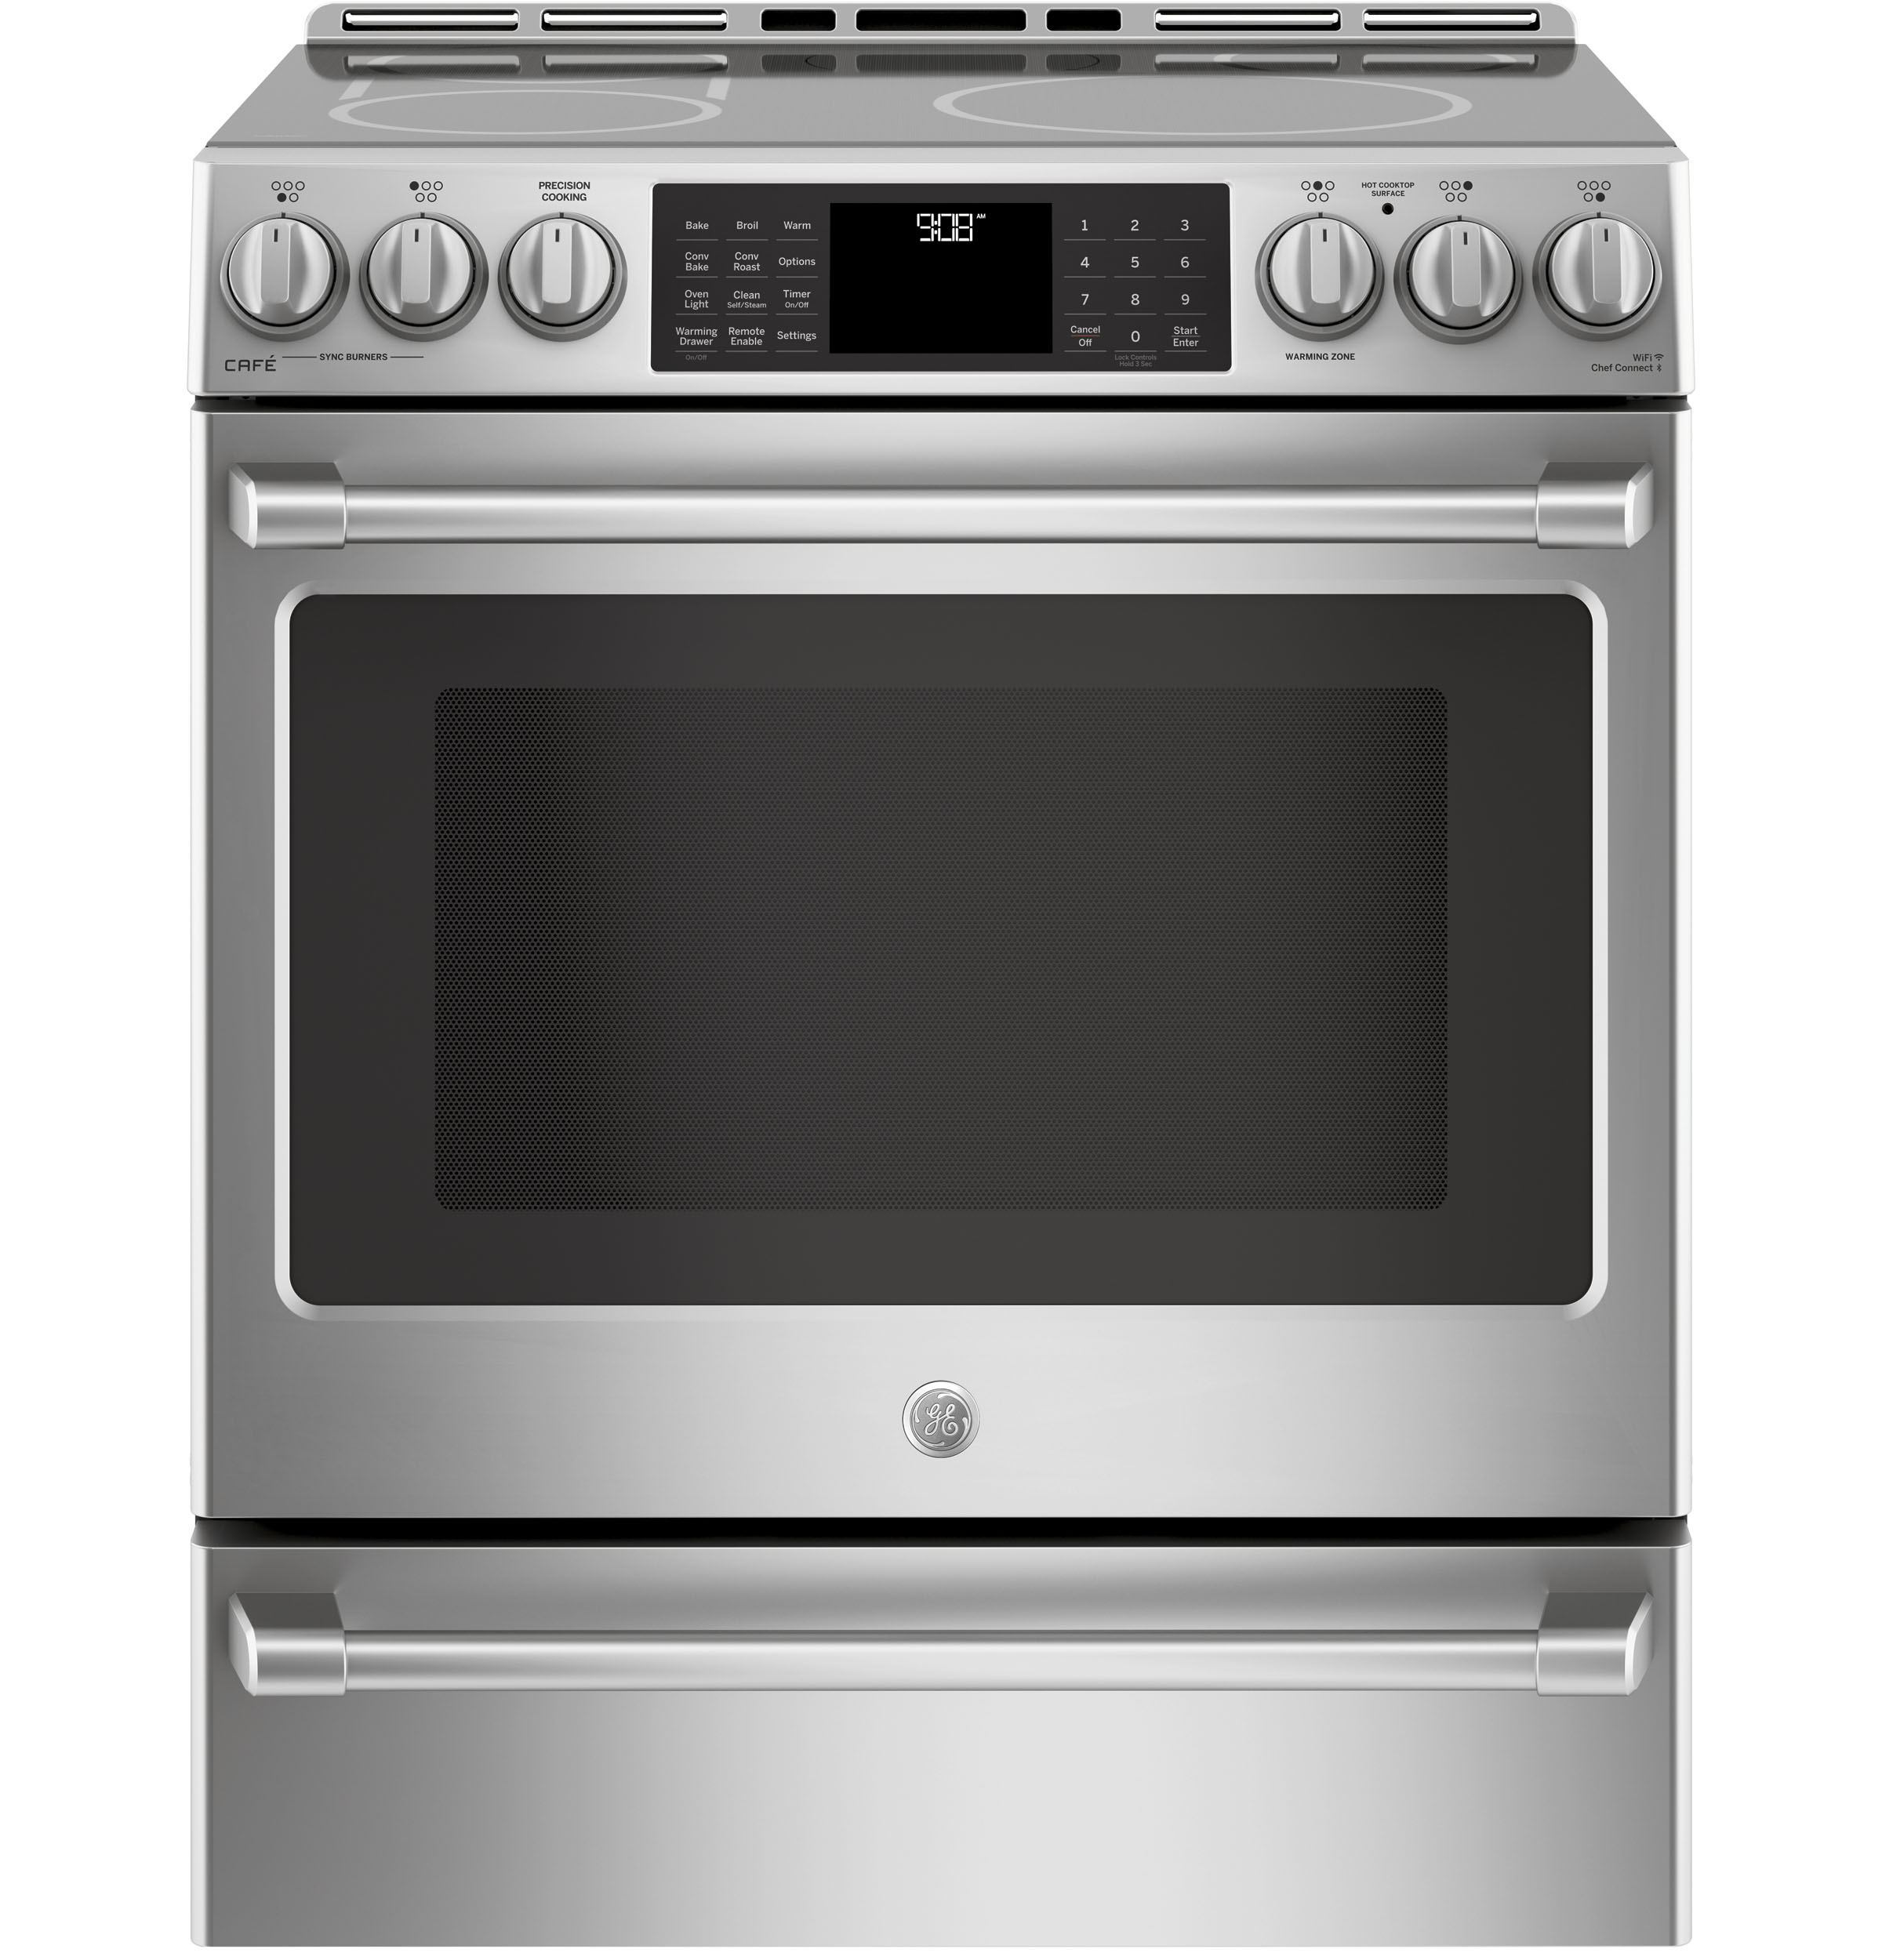 "GE Cafe GE Cafe™ Series 30"" Slide-In Front Control Induction and Convection Range with Warming Drawer"